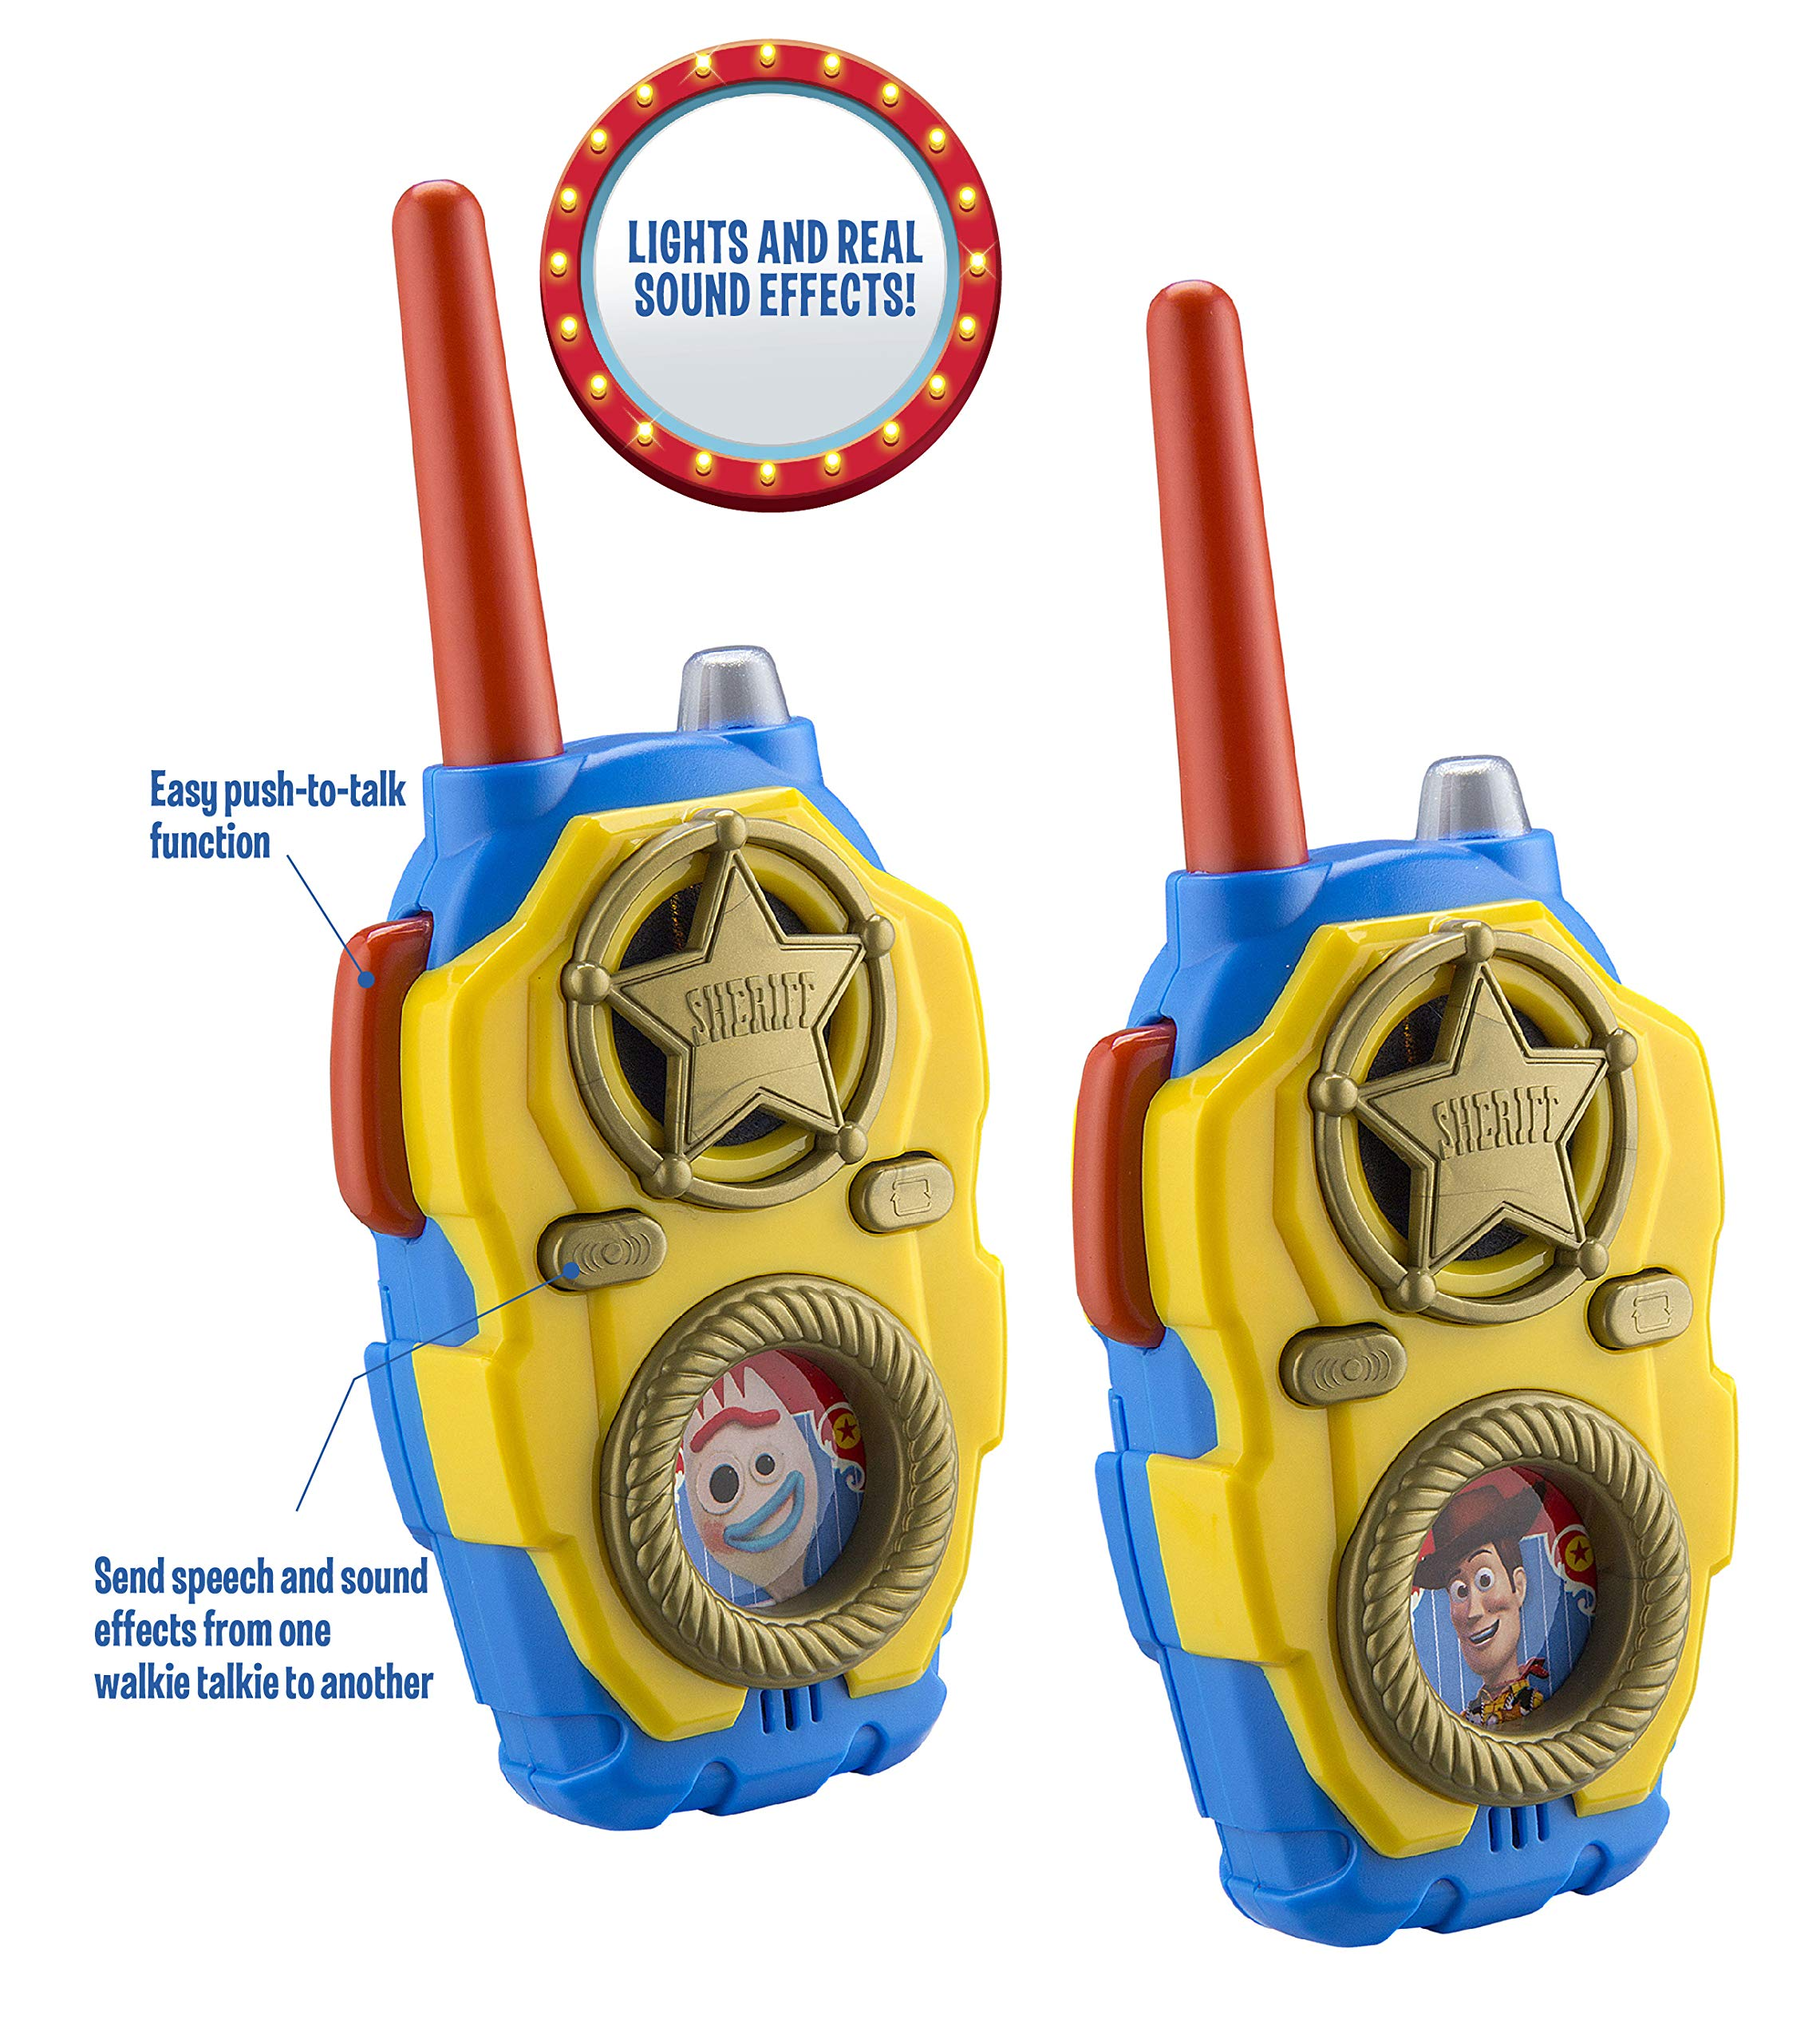 eKids Toy Story 4 FRS Walkie Talkies with Lights and Sounds Kid Friendly Easy to Use by eKids (Image #3)